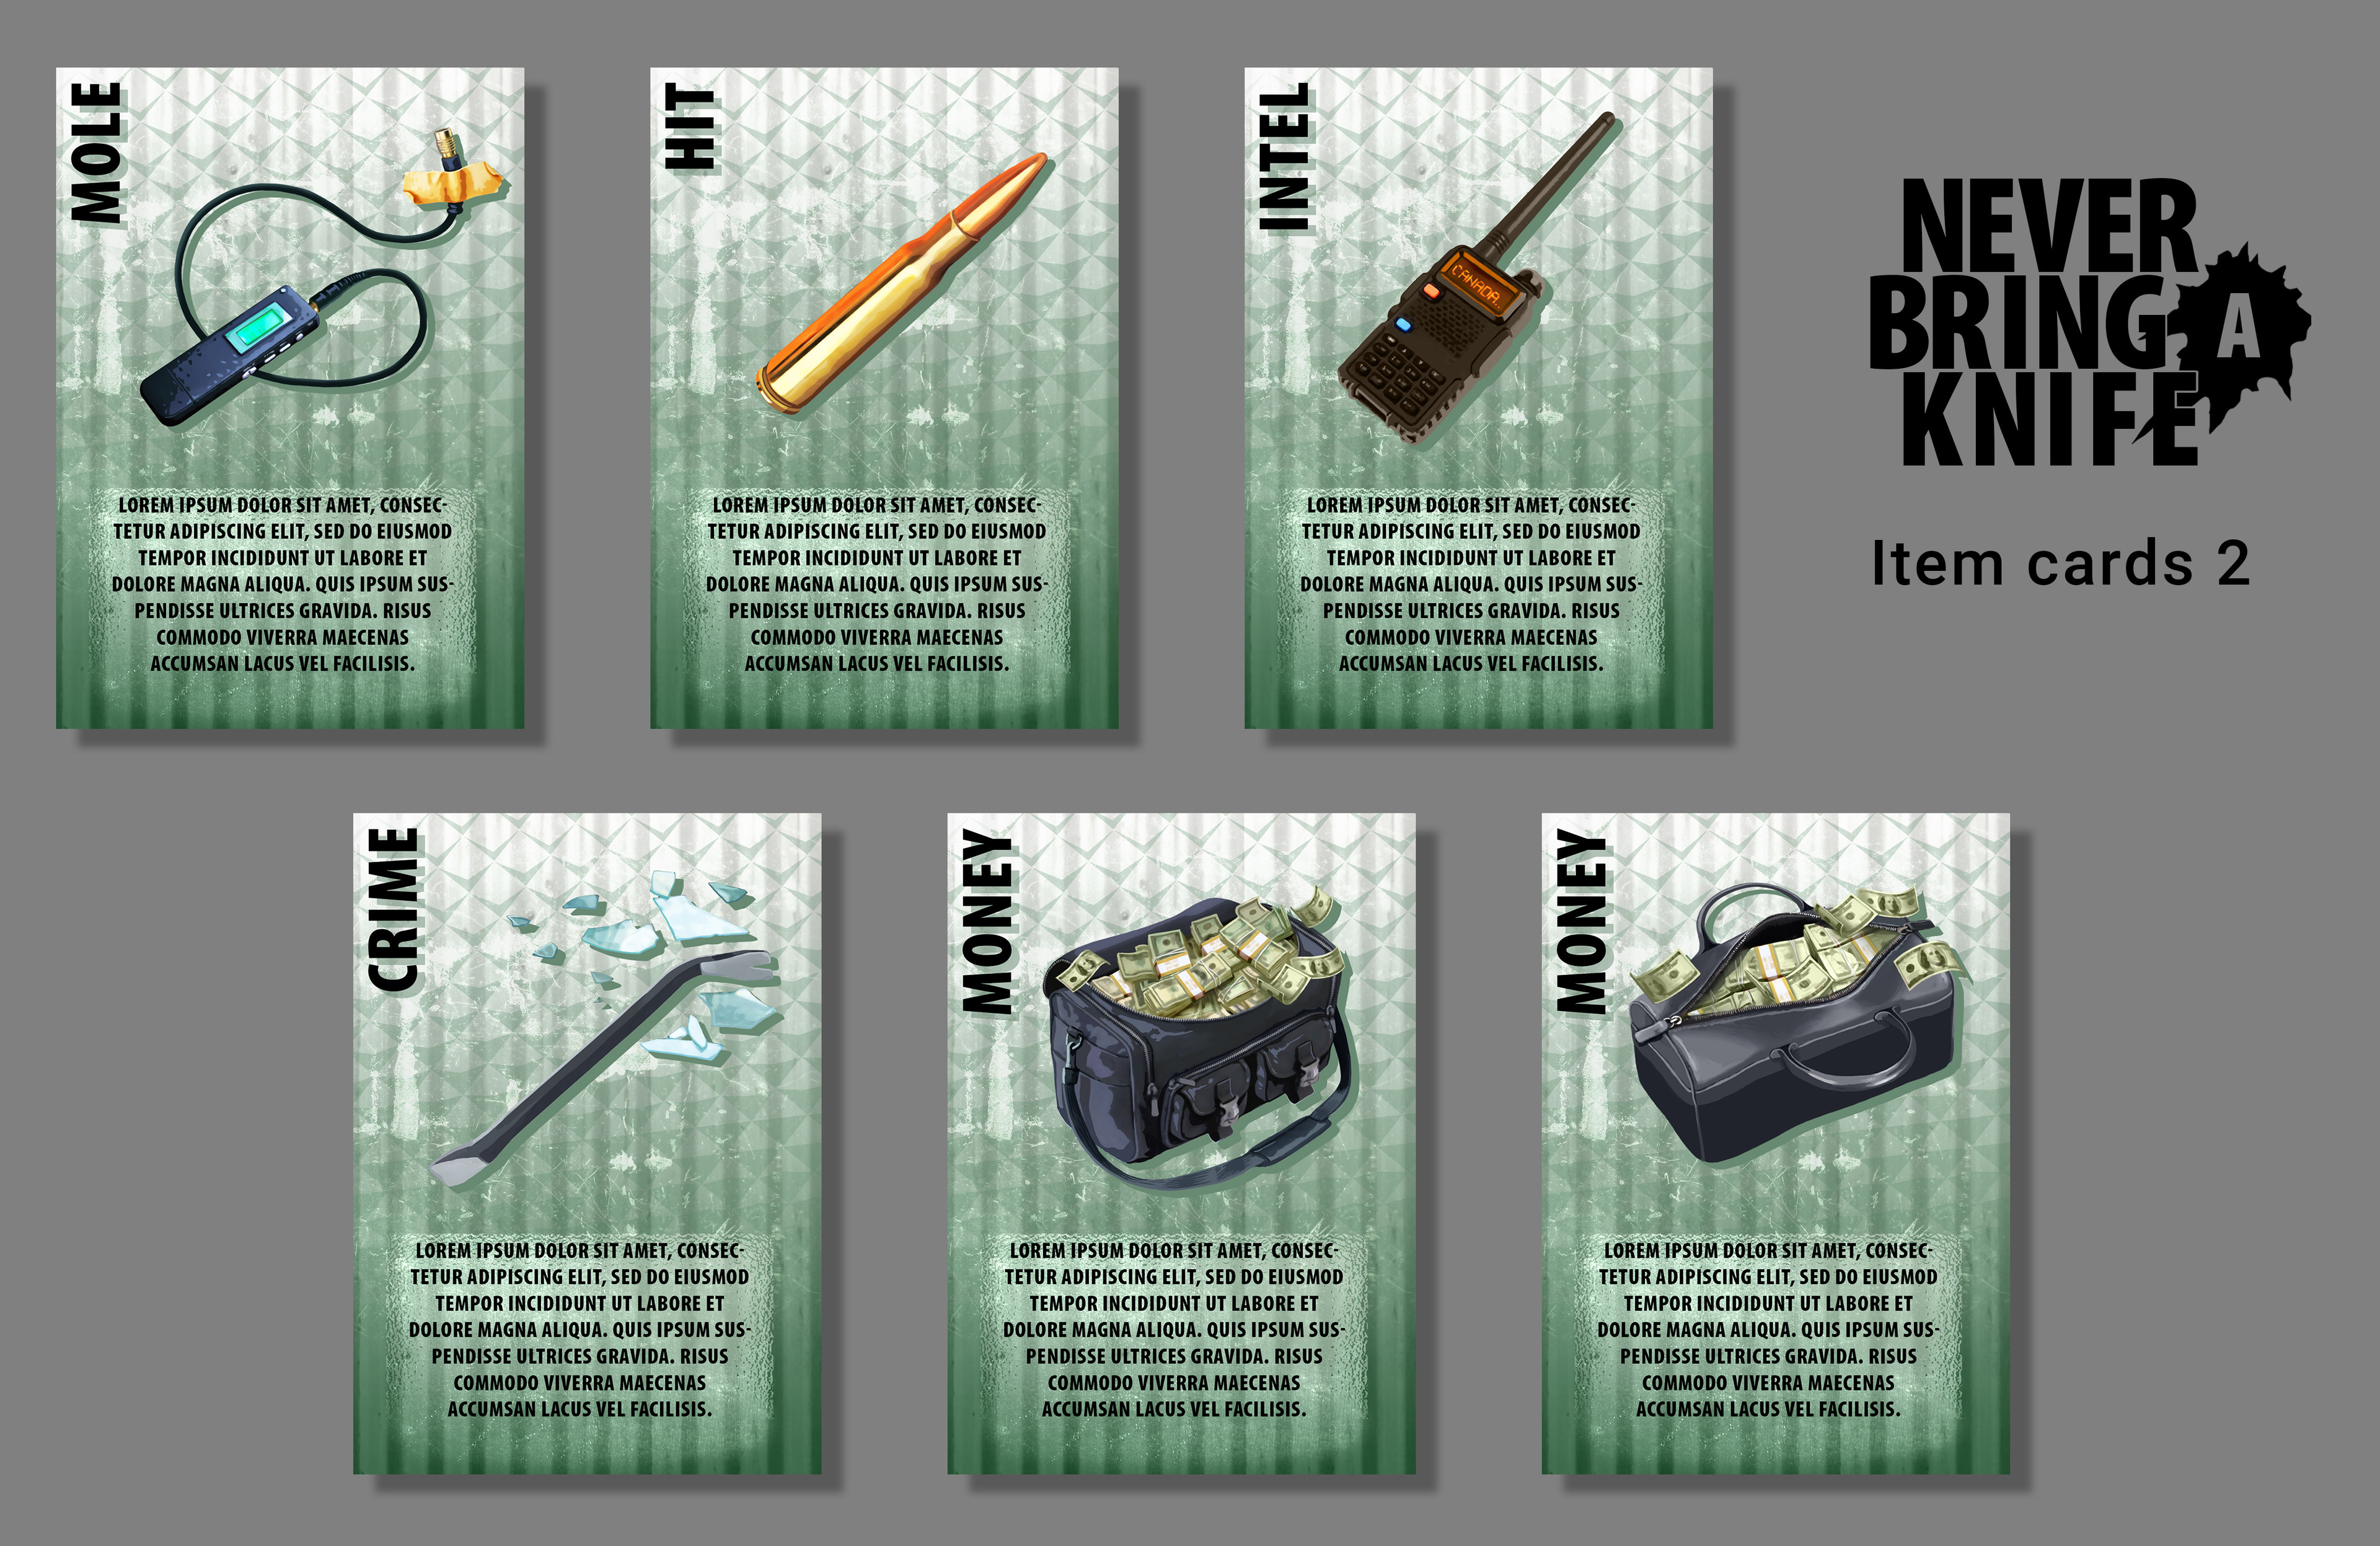 More item cards for the Never Bring a Knife card game from Atlas Games.